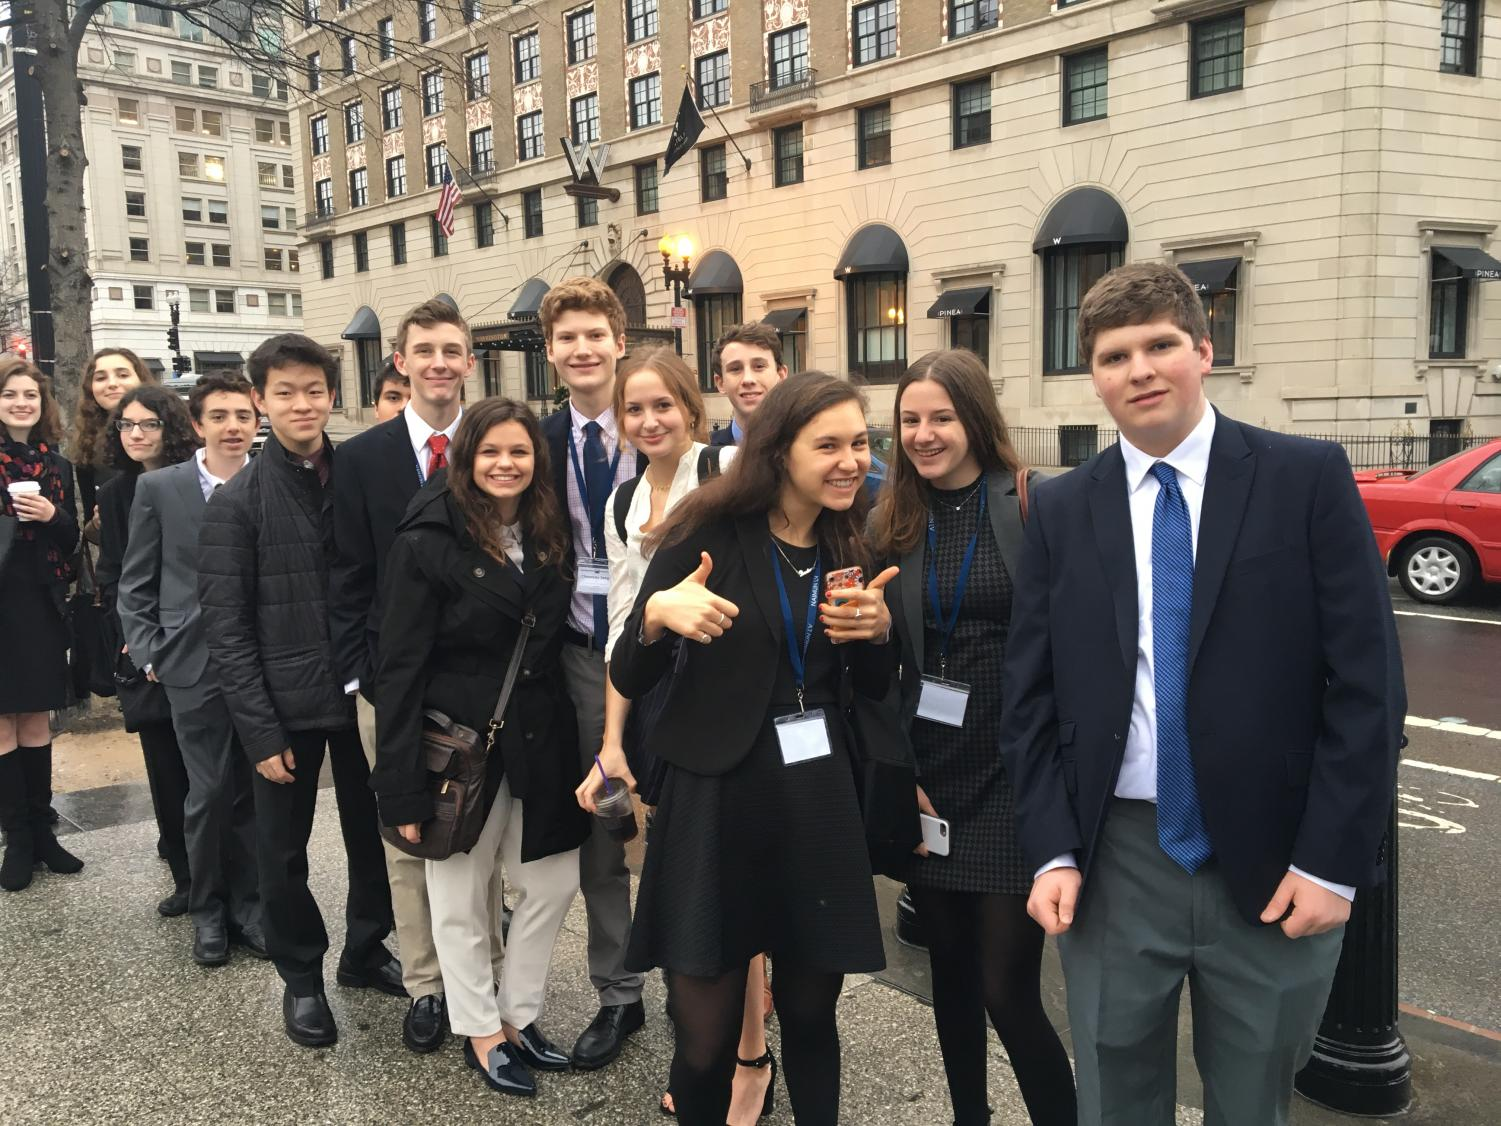 New Trier Model UN delegates in line before security screening in order to visit White House | Guthrie